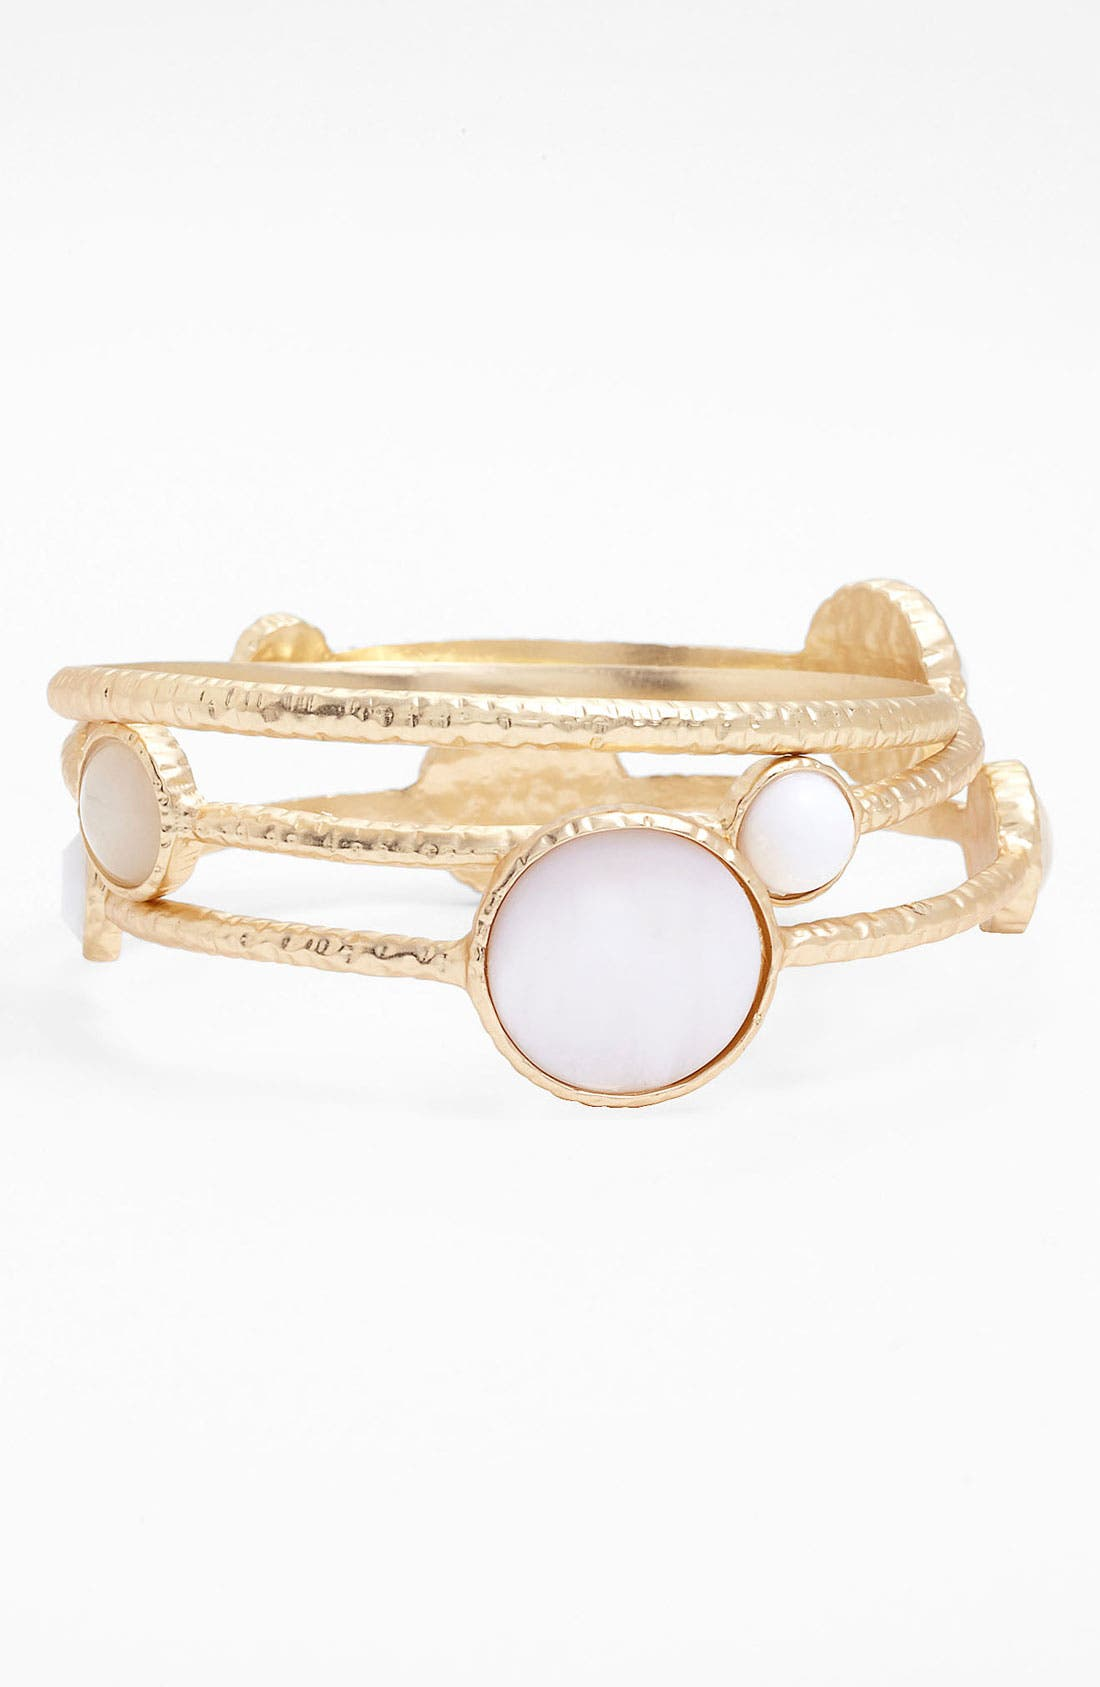 Alternate Image 1 Selected - Nordstrom 'Santorini' Station Bangles (Set of 3)